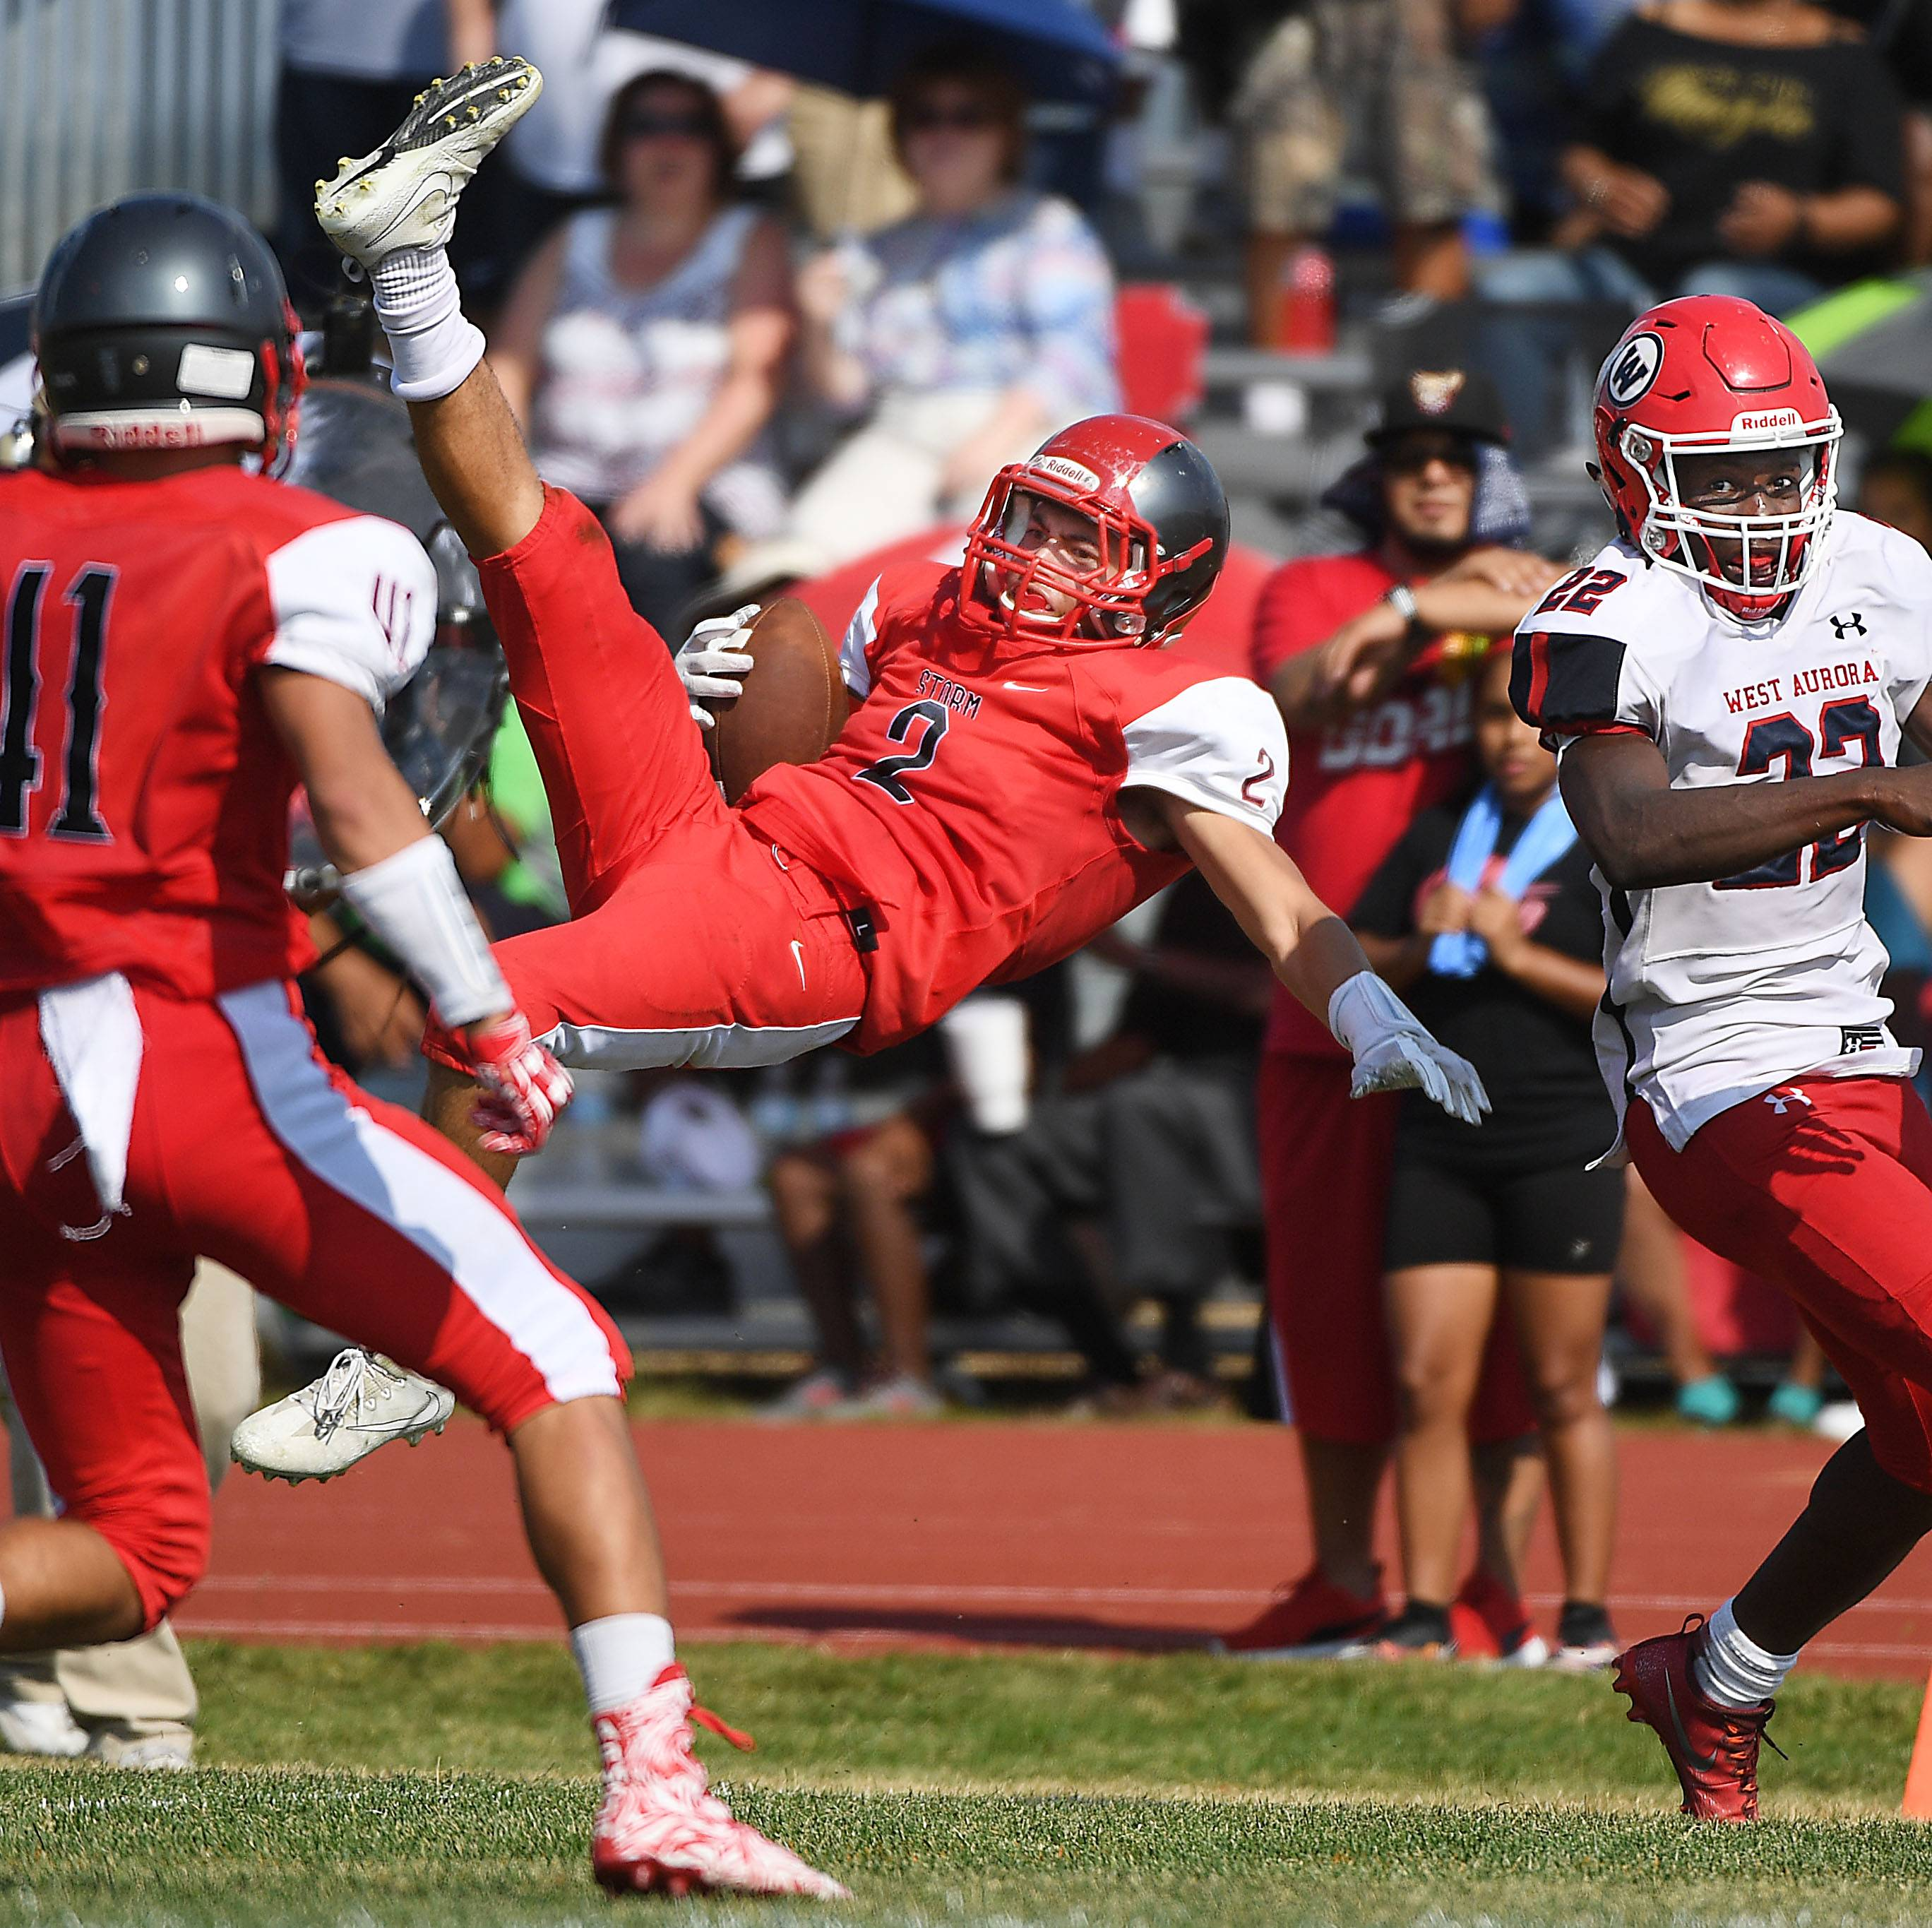 Images: South Elgin vs. West Aurora, football